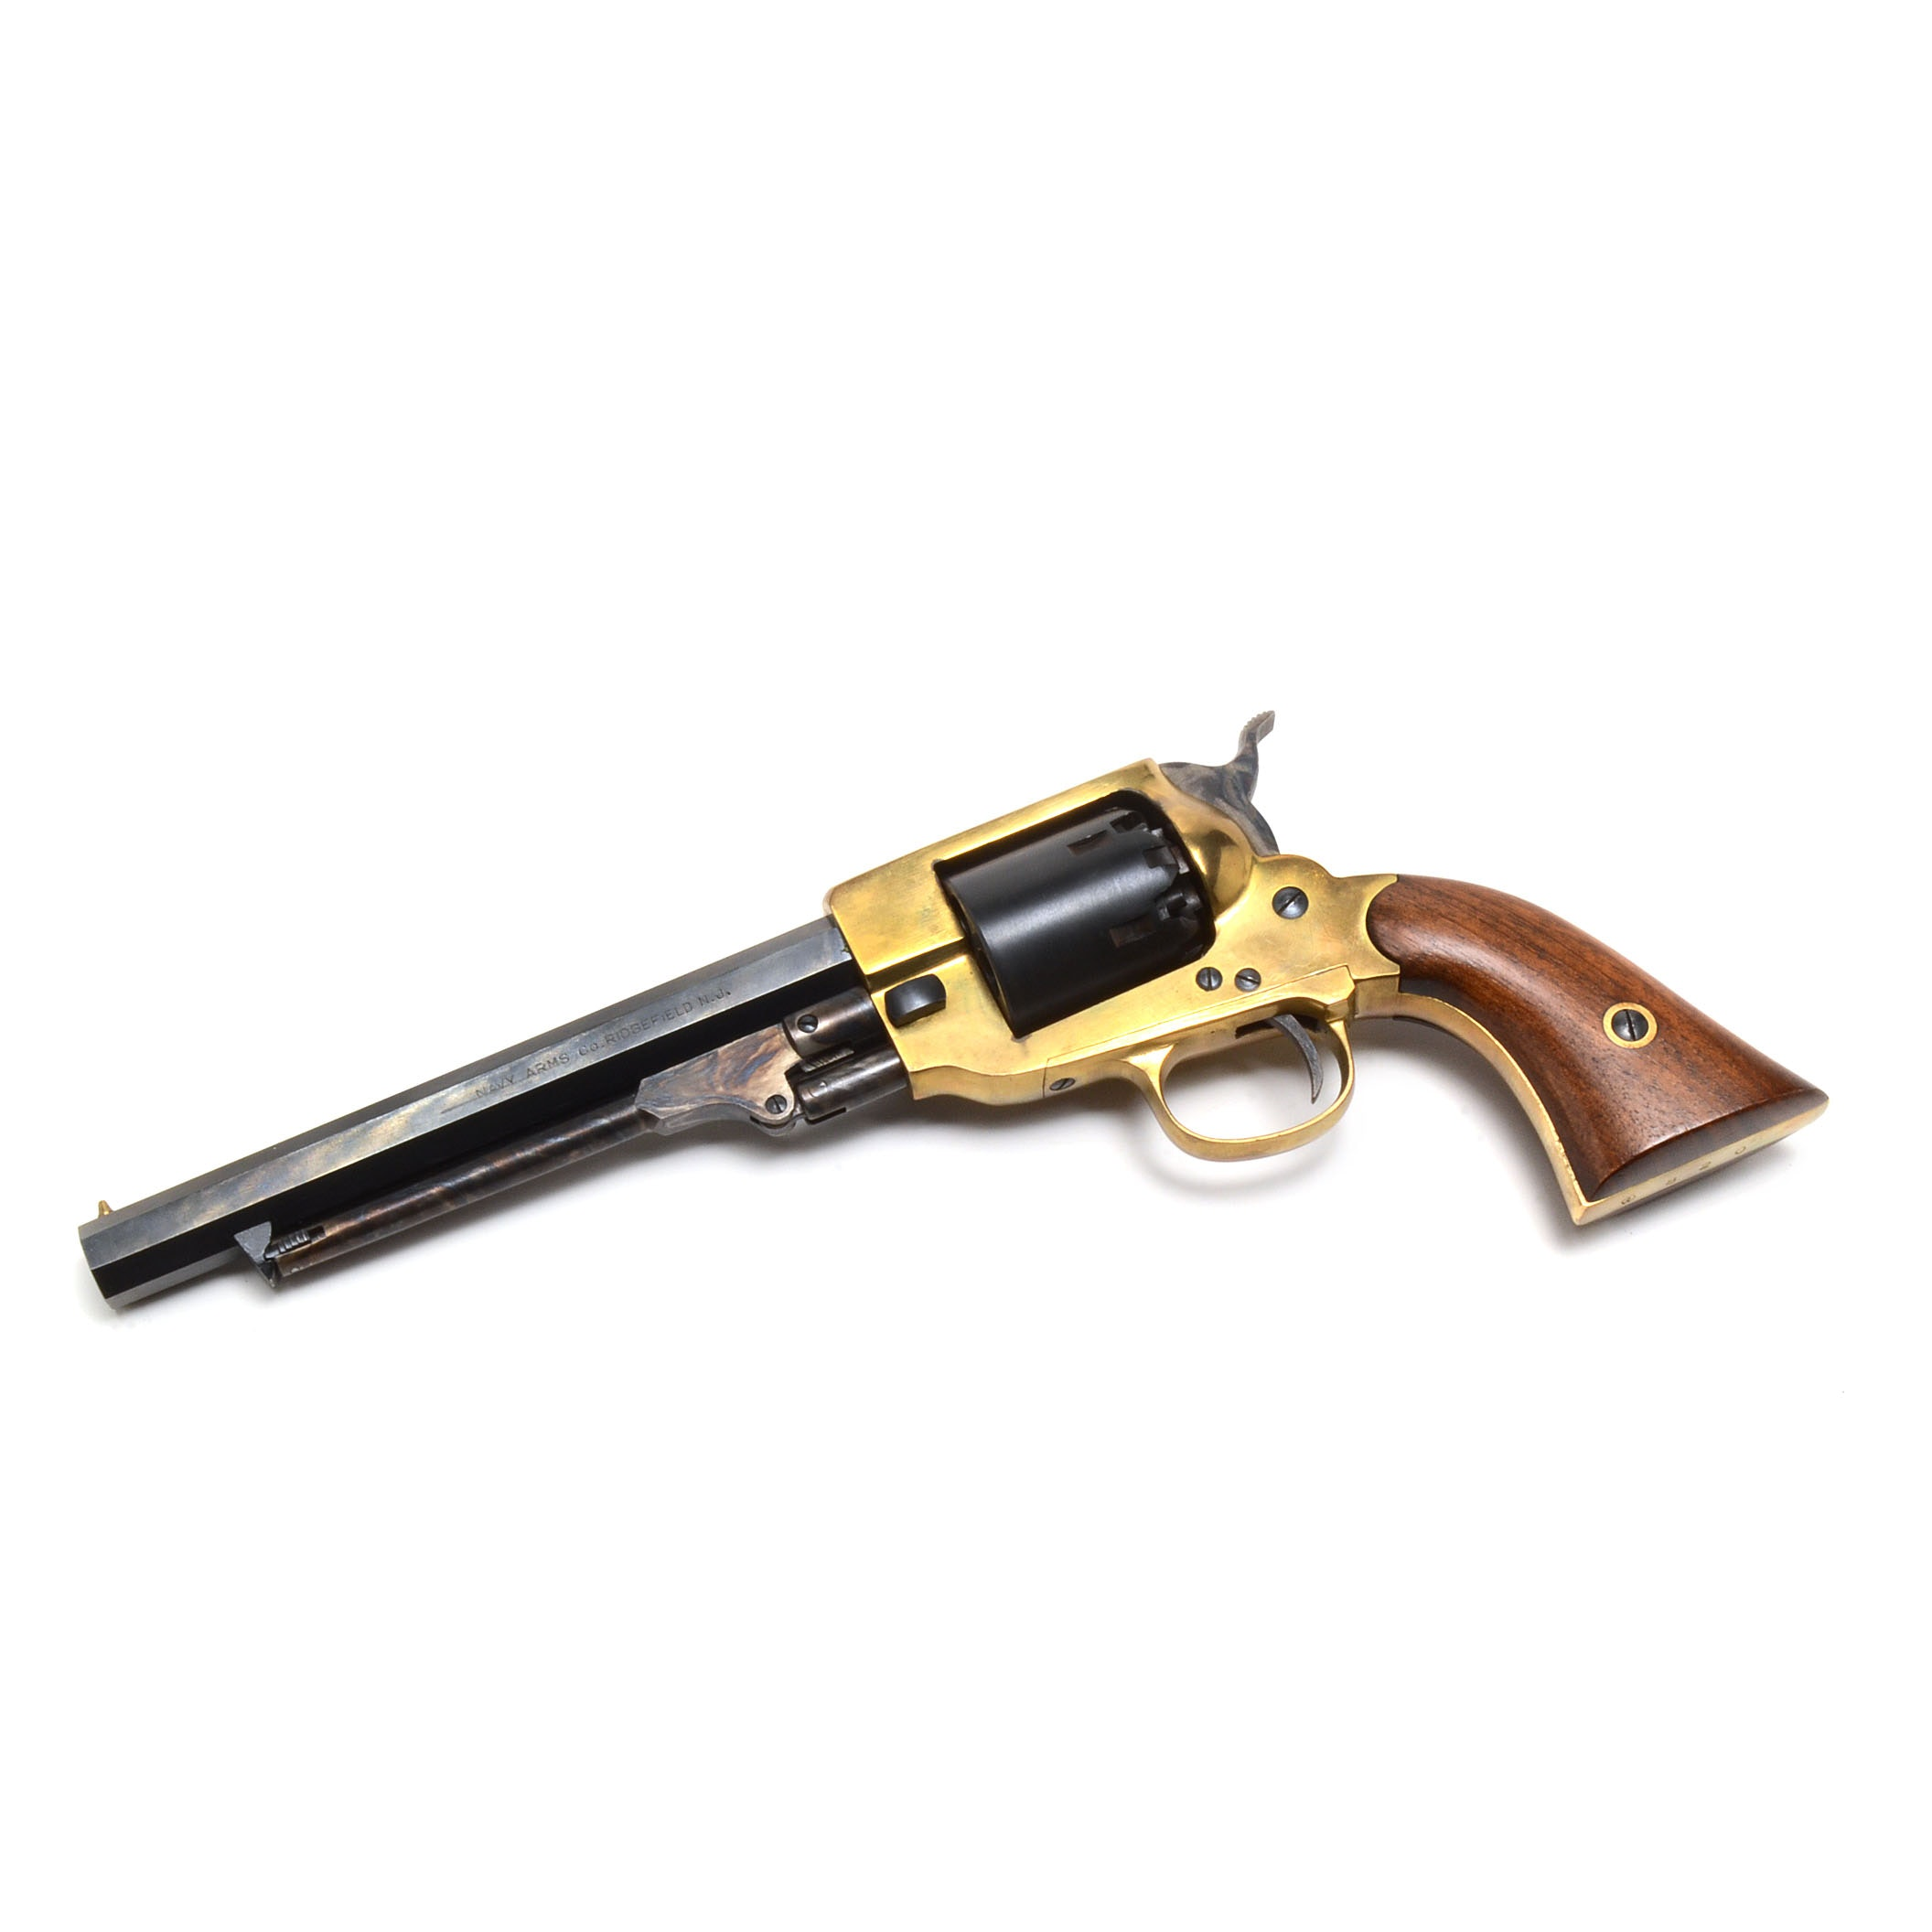 Navy Arms Reproduction Colt 1851 Navy Revolver with Case